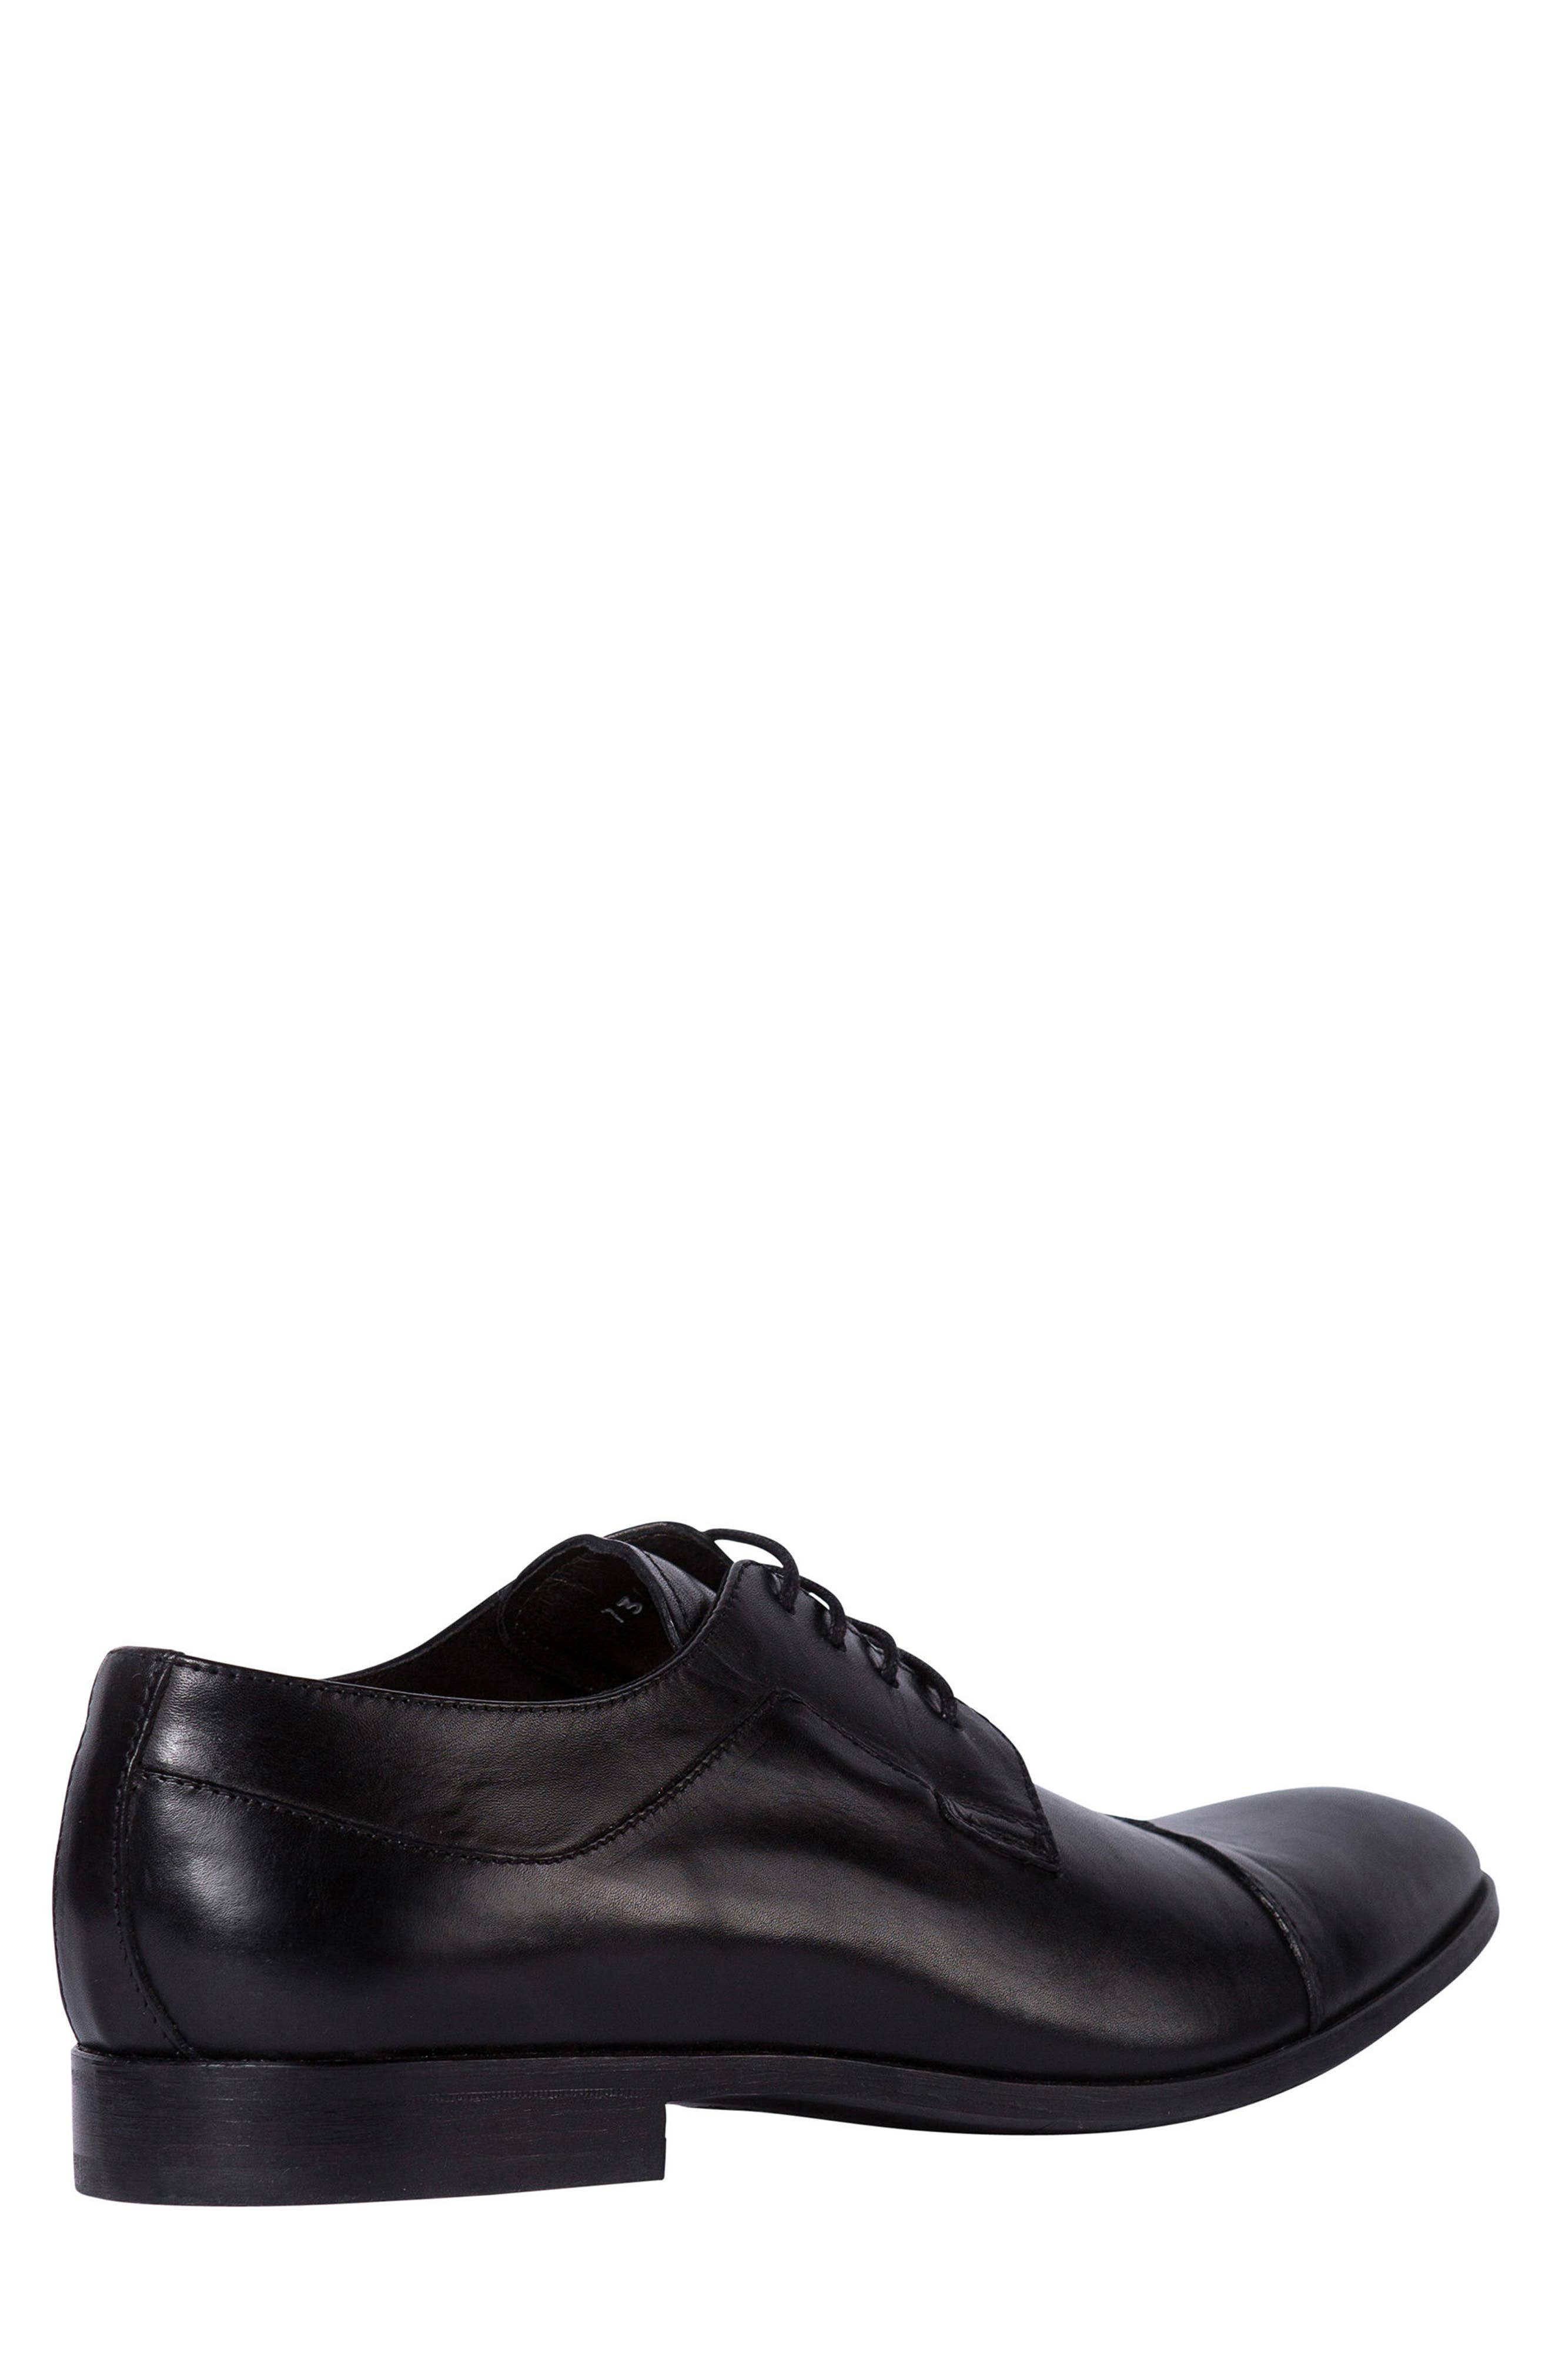 Admiral's Way Cap Toe Derby,                             Alternate thumbnail 2, color,                             Nero Leather